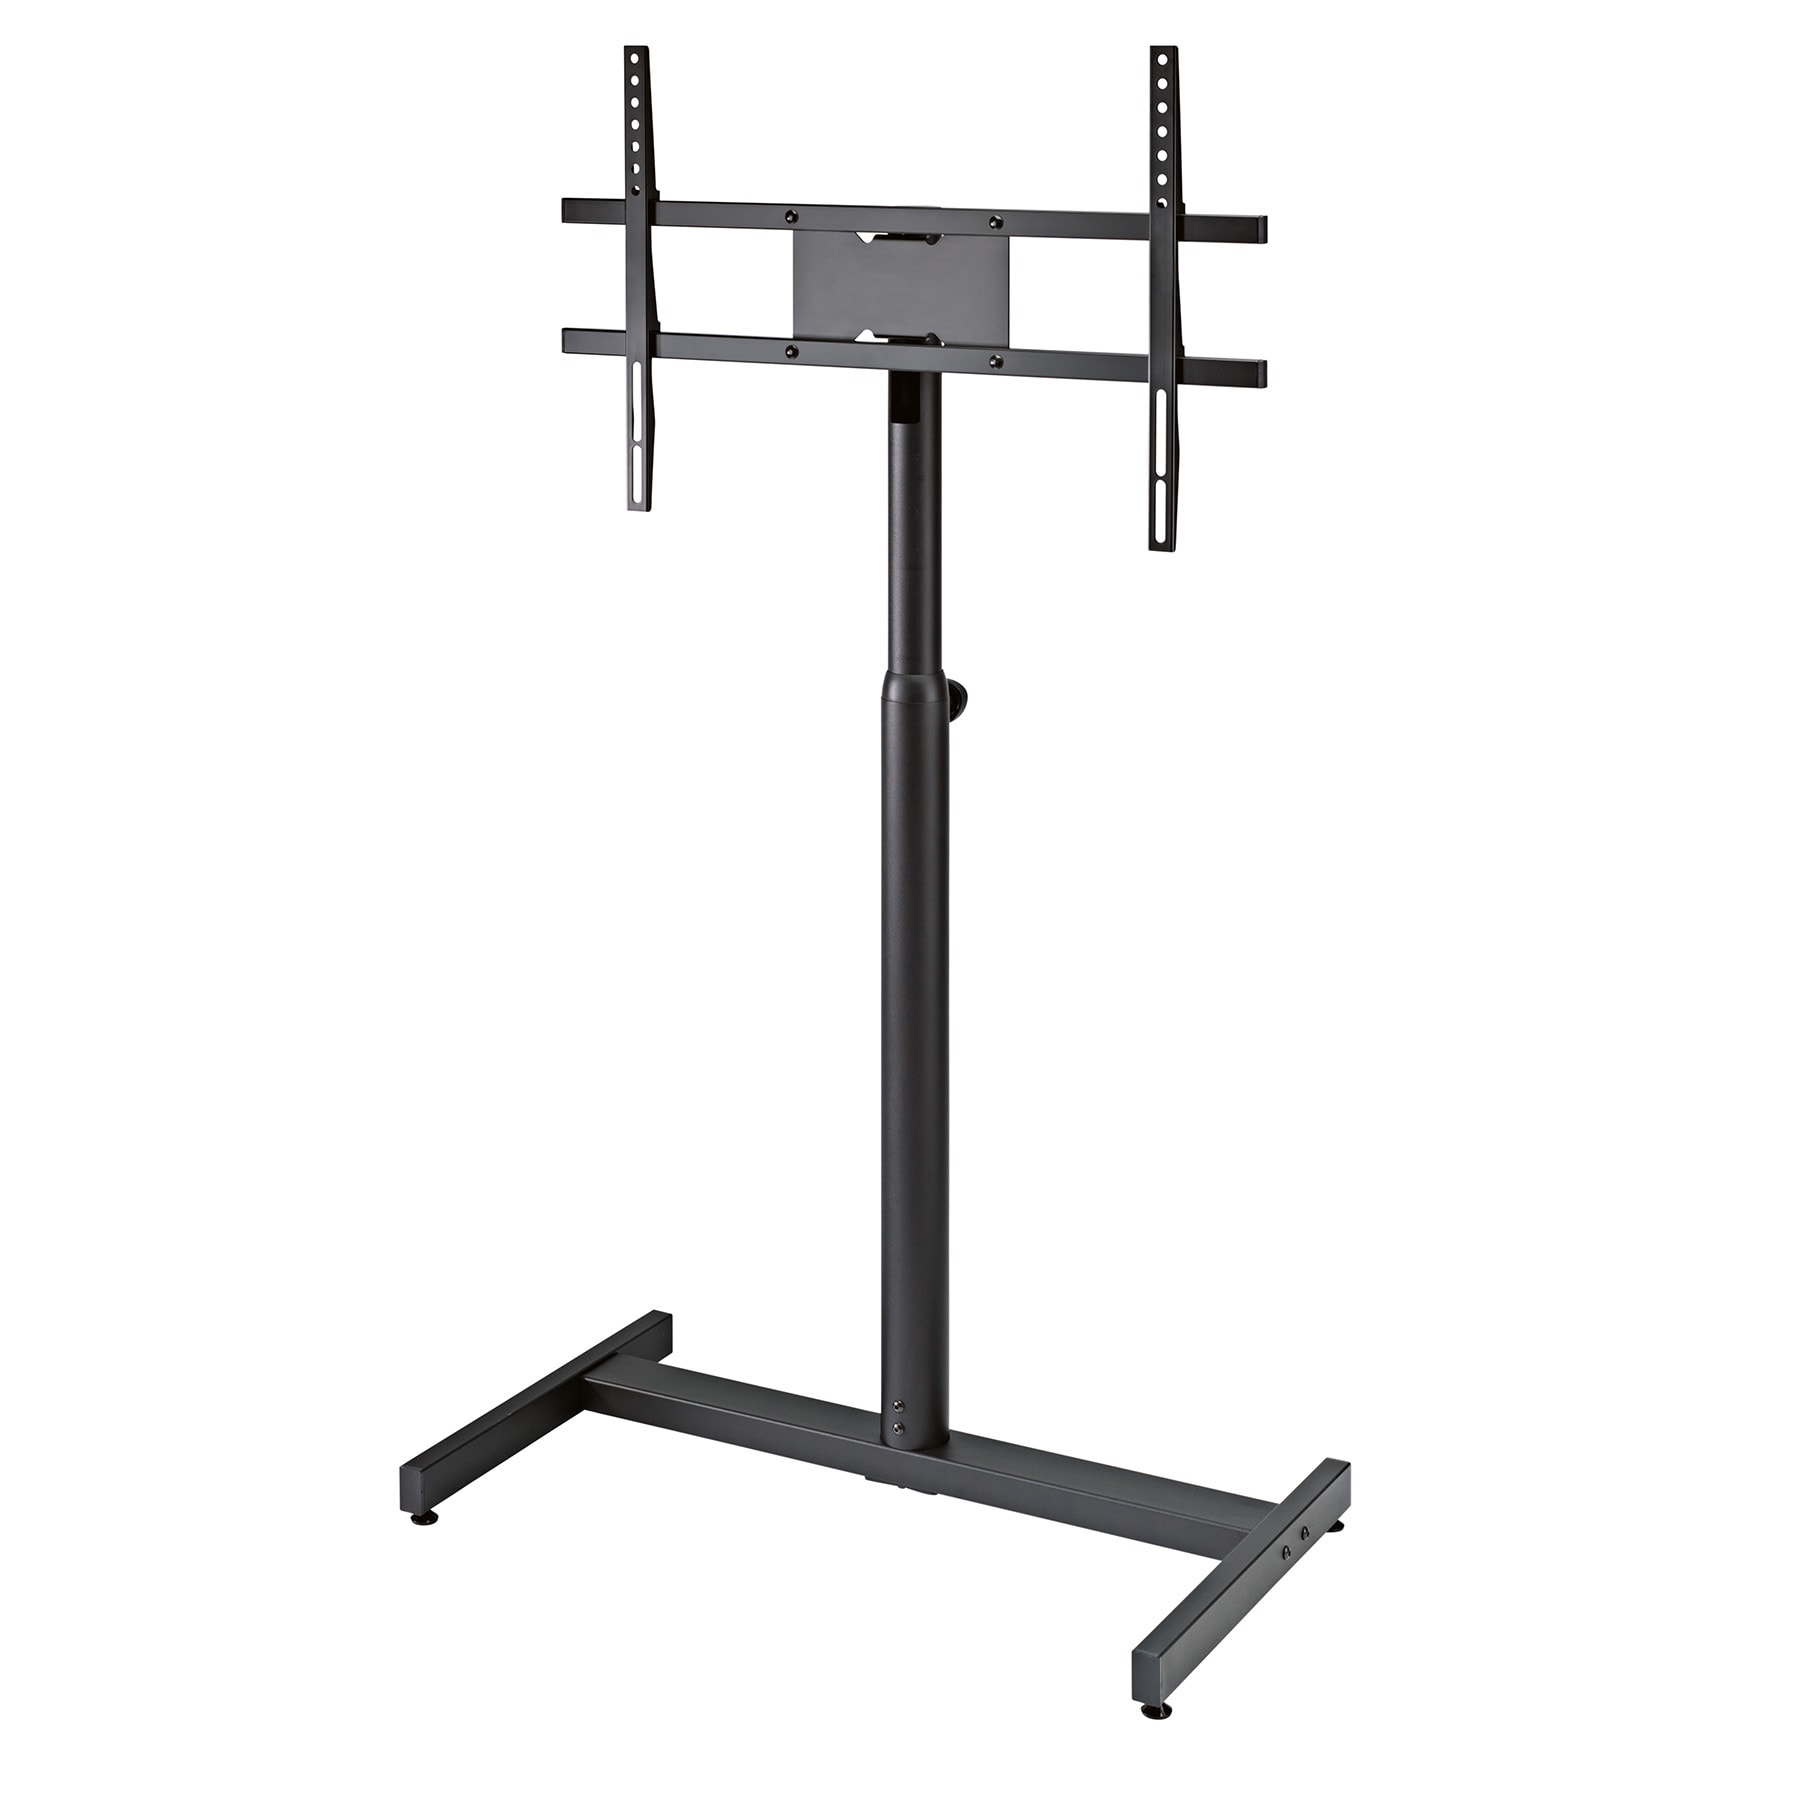 KM26783 - Screen/monitor stand